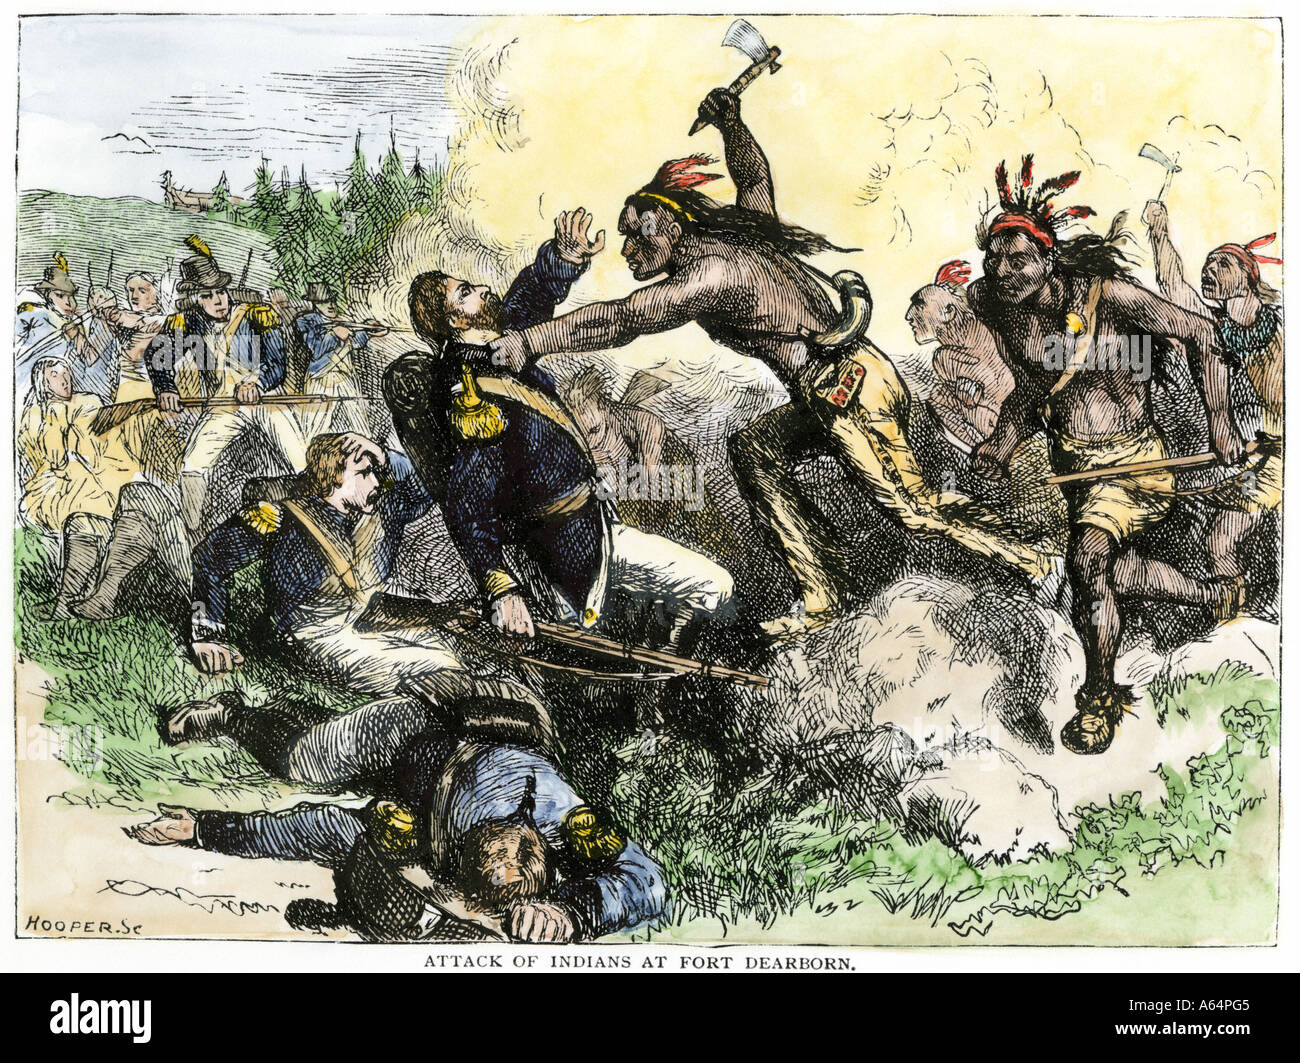 Native Americans battle the American garrison at Fort Dearborn in Illinois  during the War of 1812. Hand-colored woodcut